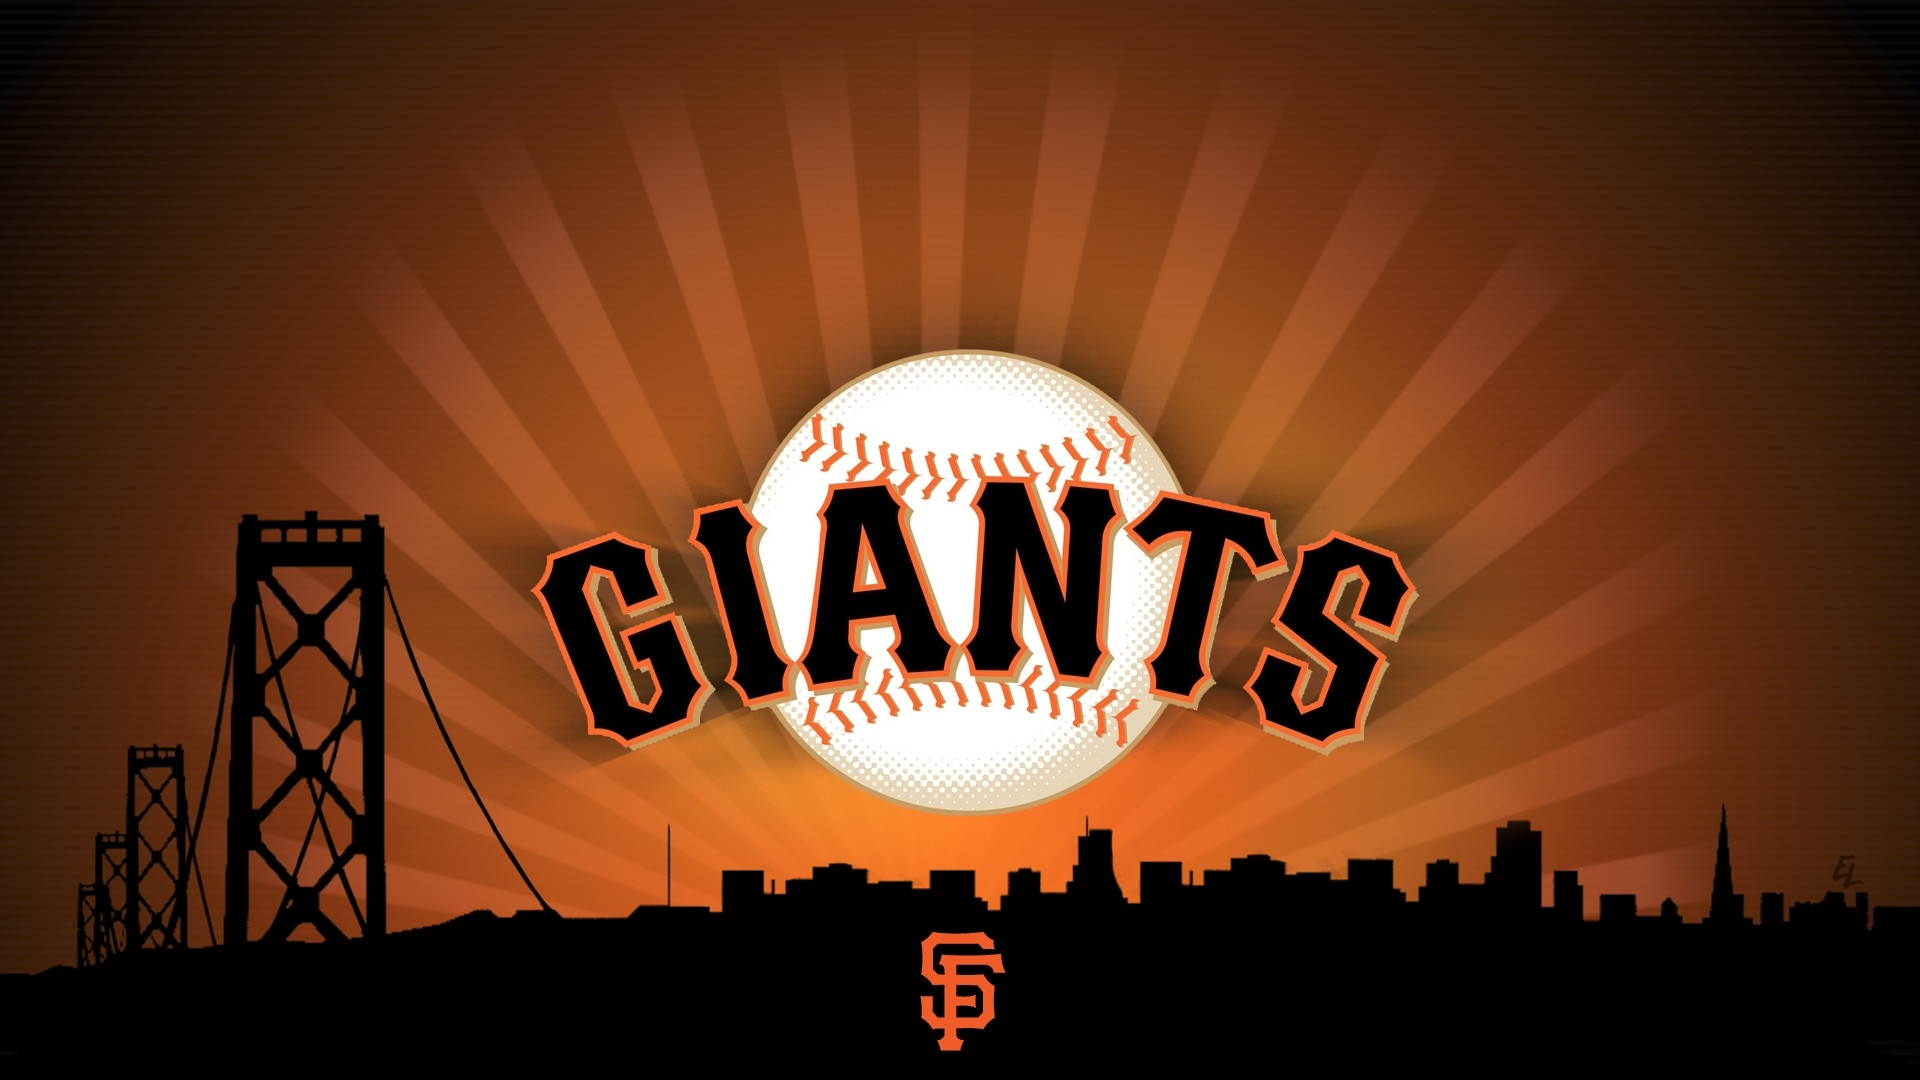 san francisco giants wallpaper (68+ images)